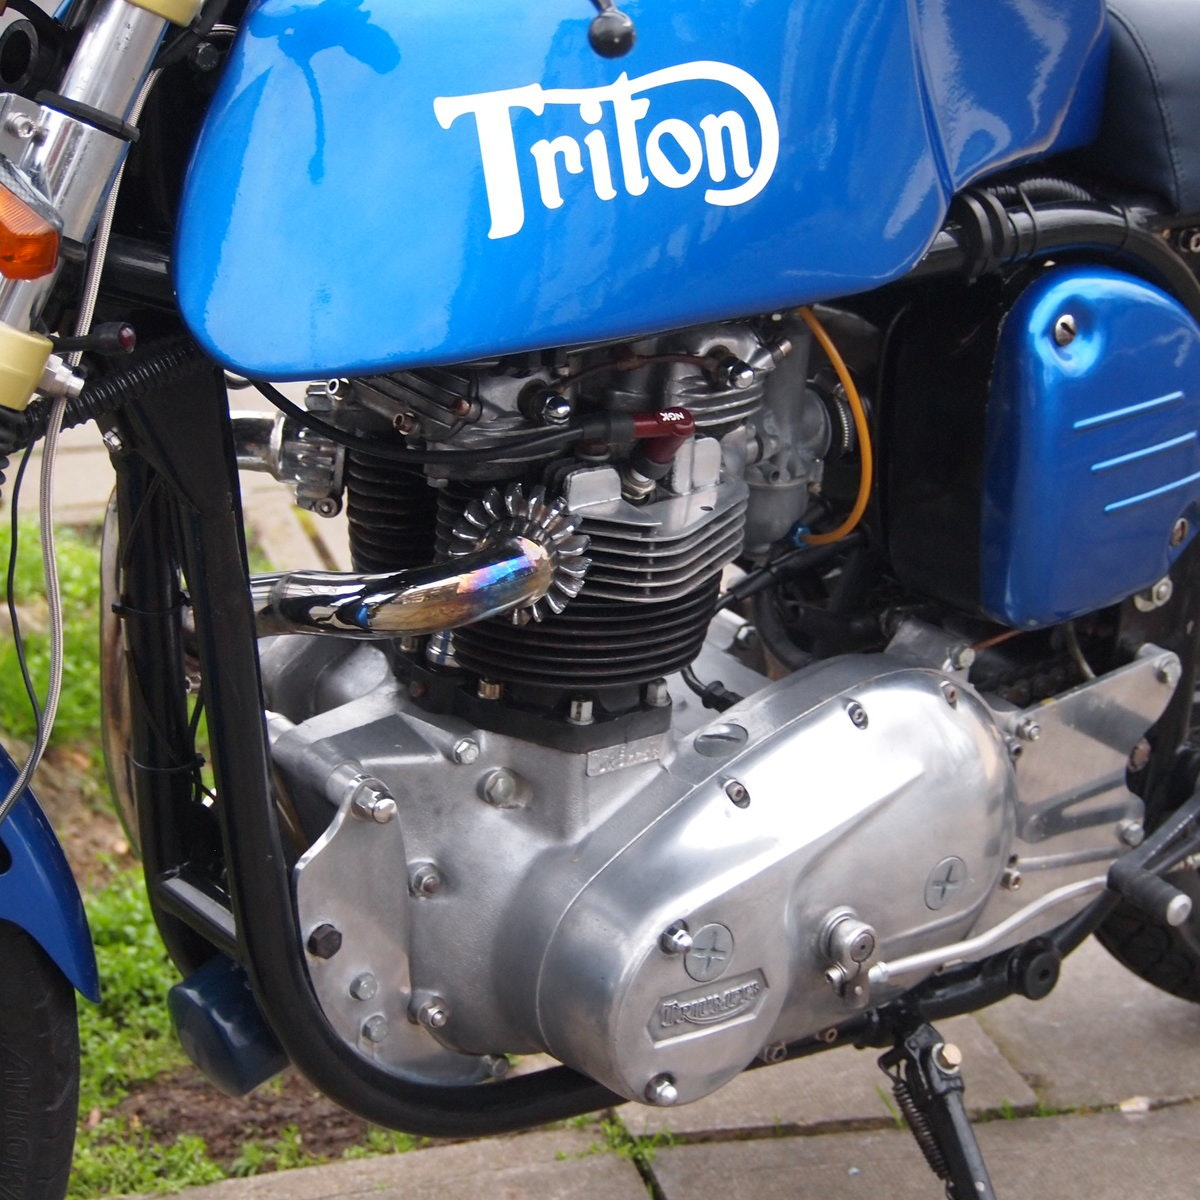 1965 Triumph Triton Featherbed Framed, RESERVED FOR NORMAN. SOLD (picture 4 of 6)